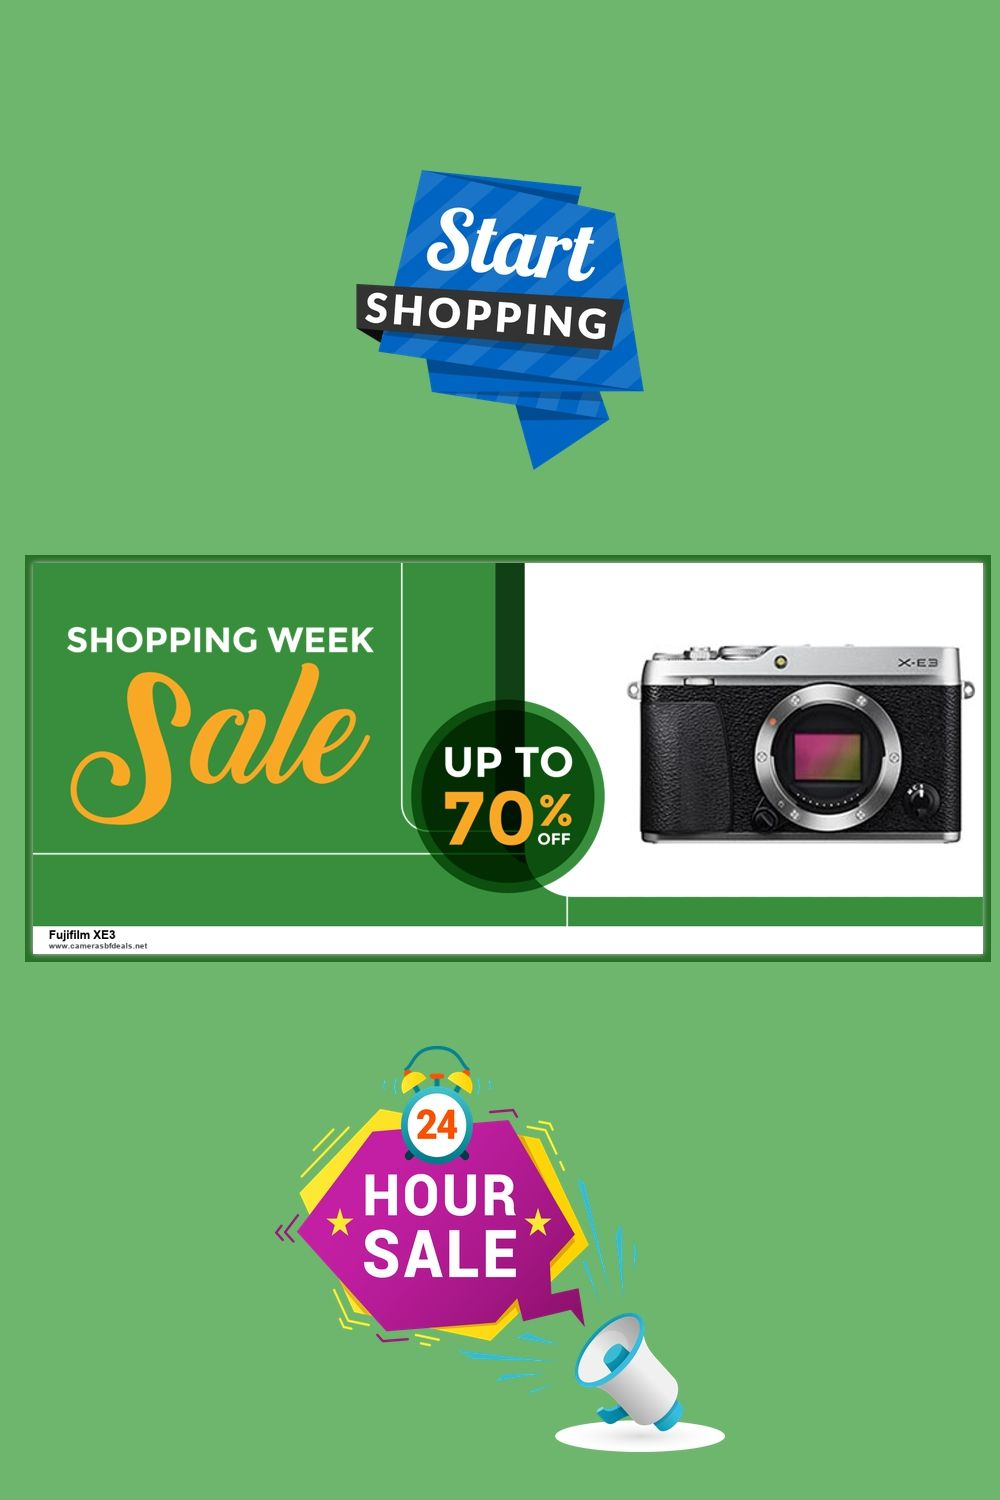 7 Best Fujifilm Xe3 Black Friday Deals Up To 50 Off 2020 In 2020 Black Friday Fujifilm Black Friday Cyber Monday